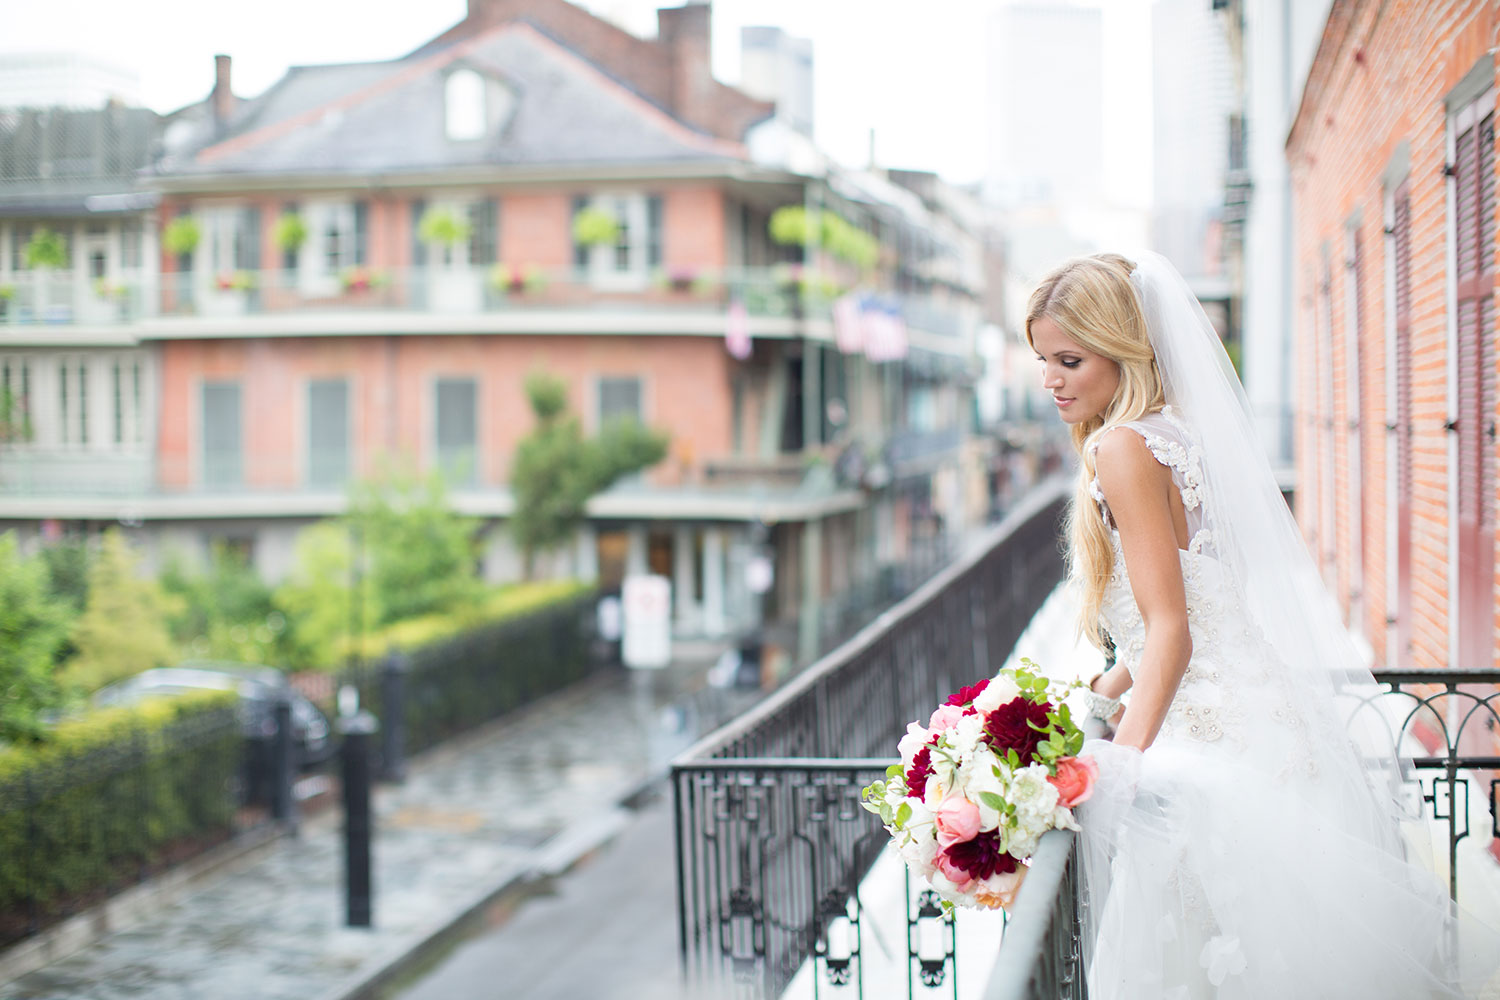 sapphireevents.com | Sapphire Events | New Orleans Wedding Planning and Design | French Quarter Mansion Wedding | Archetype Studios